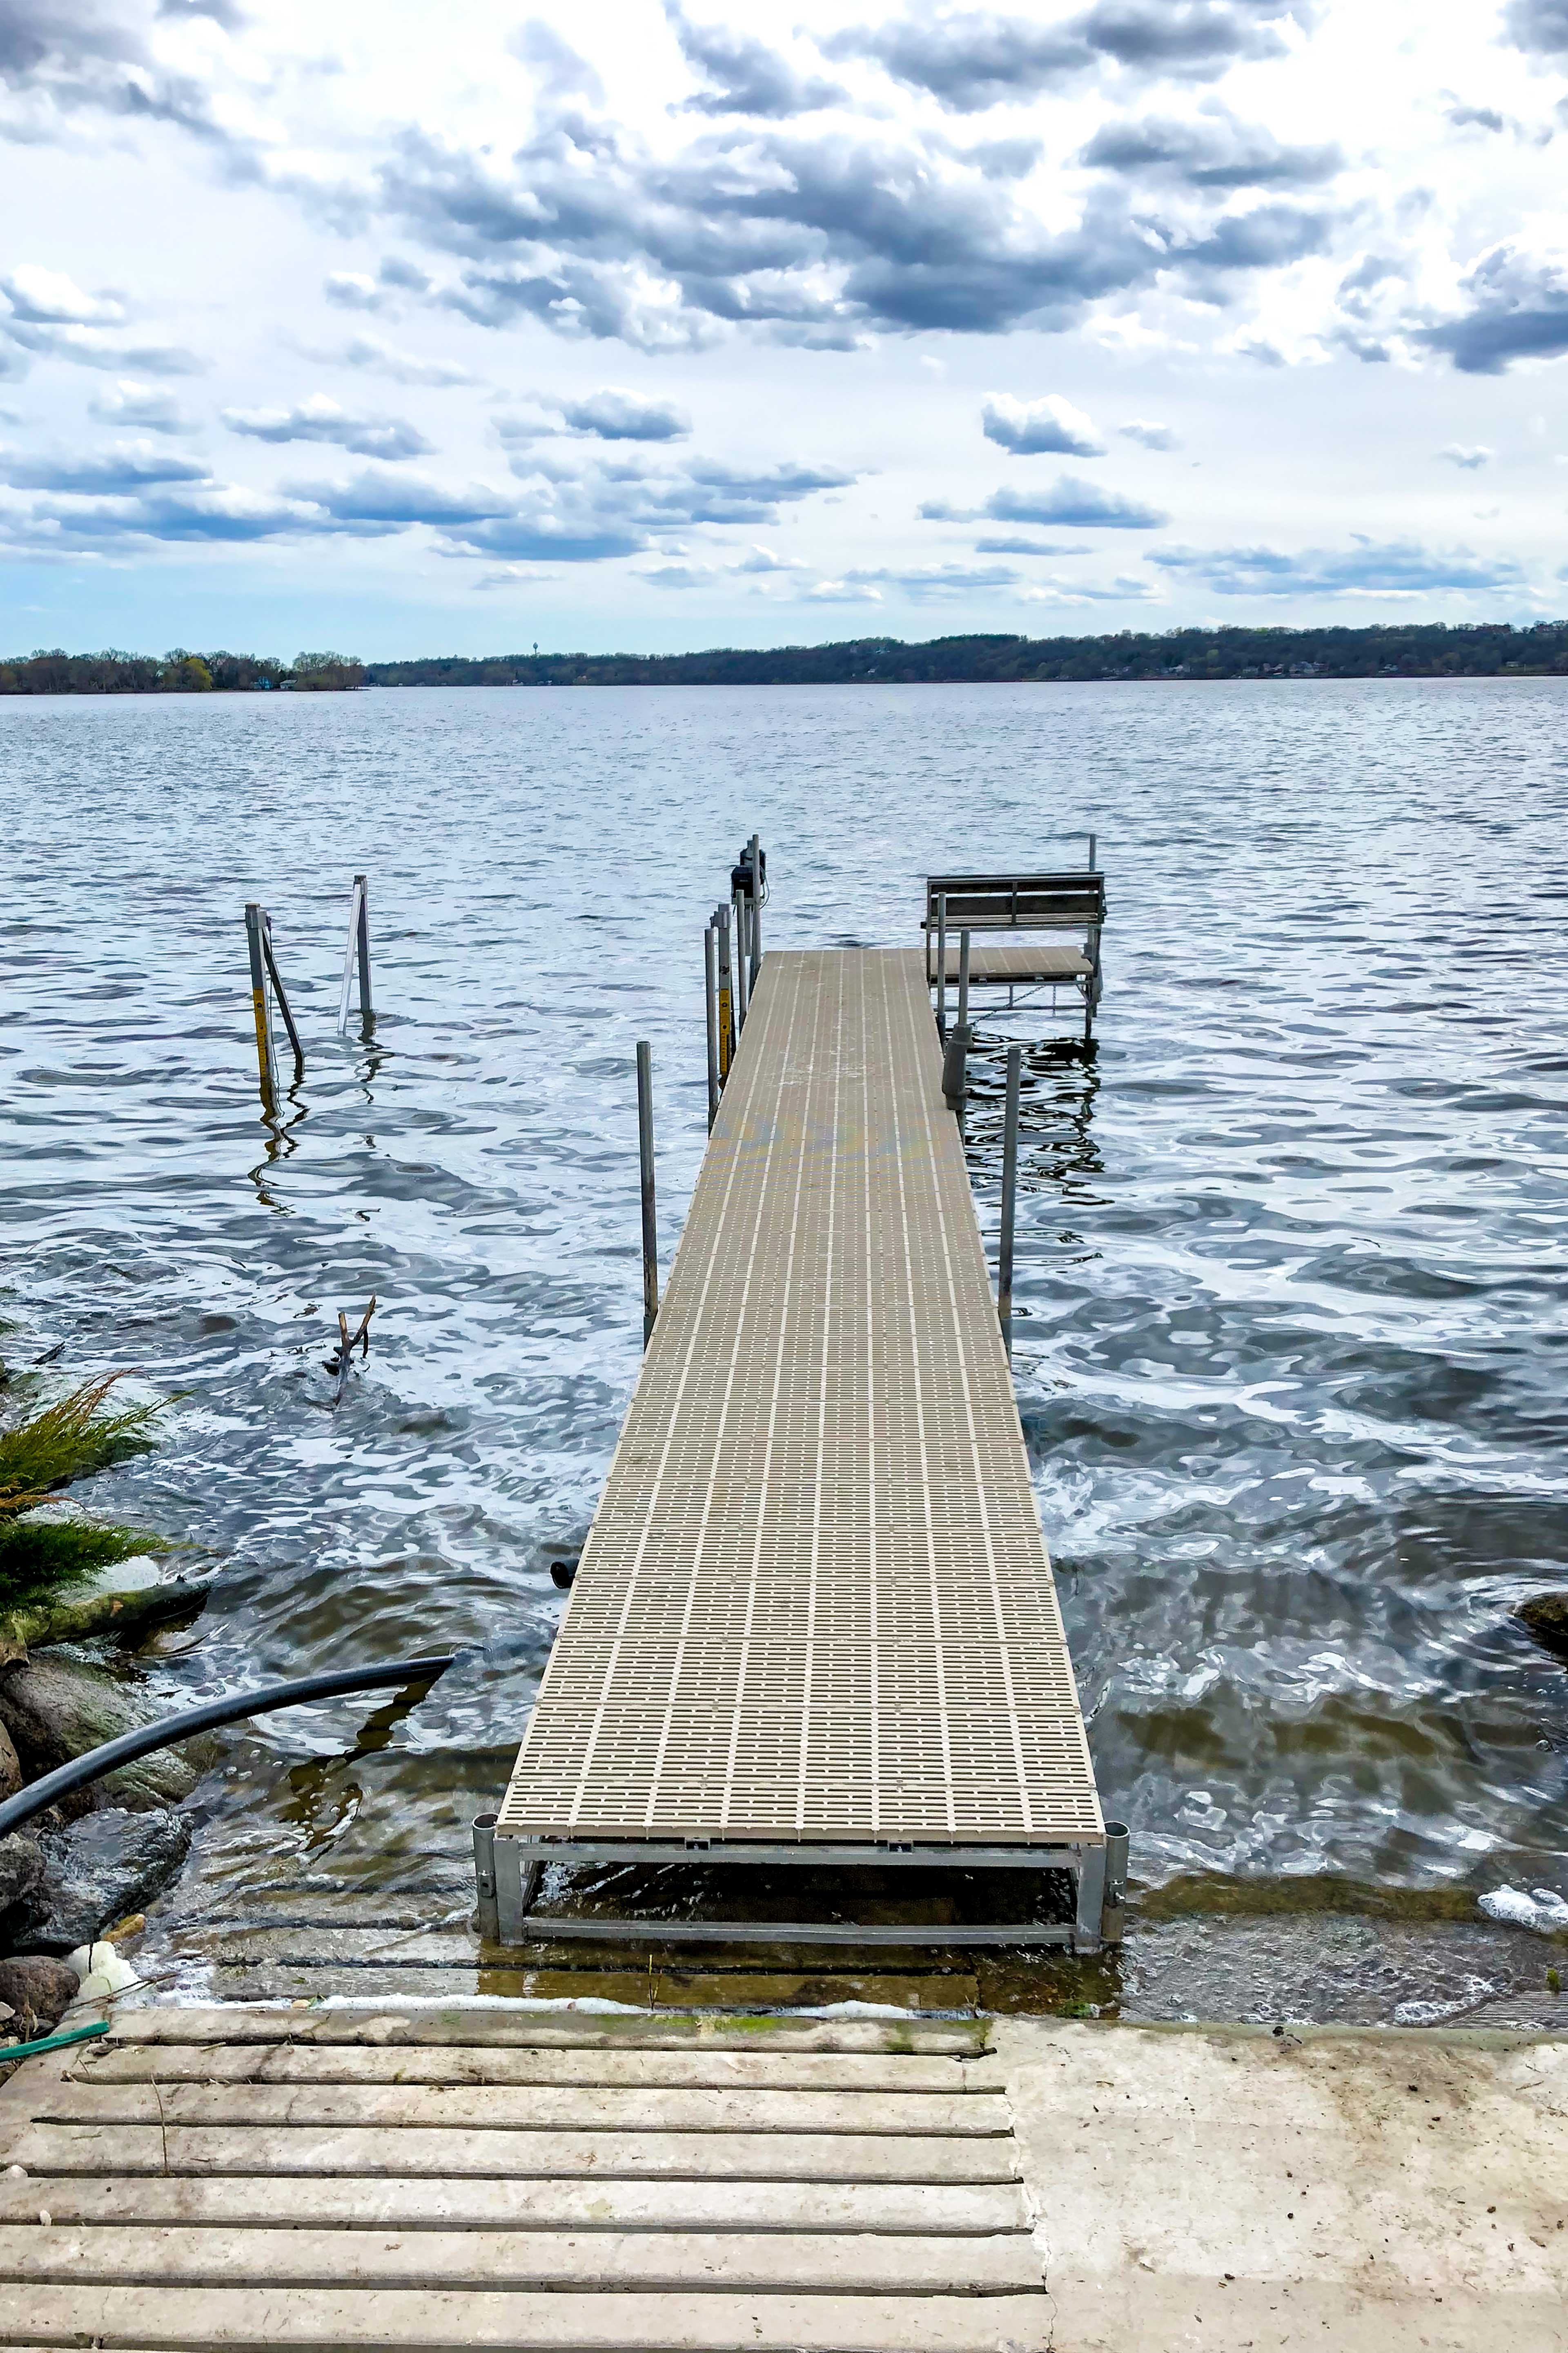 Stroll down the dock to your boat or to go for a swim!